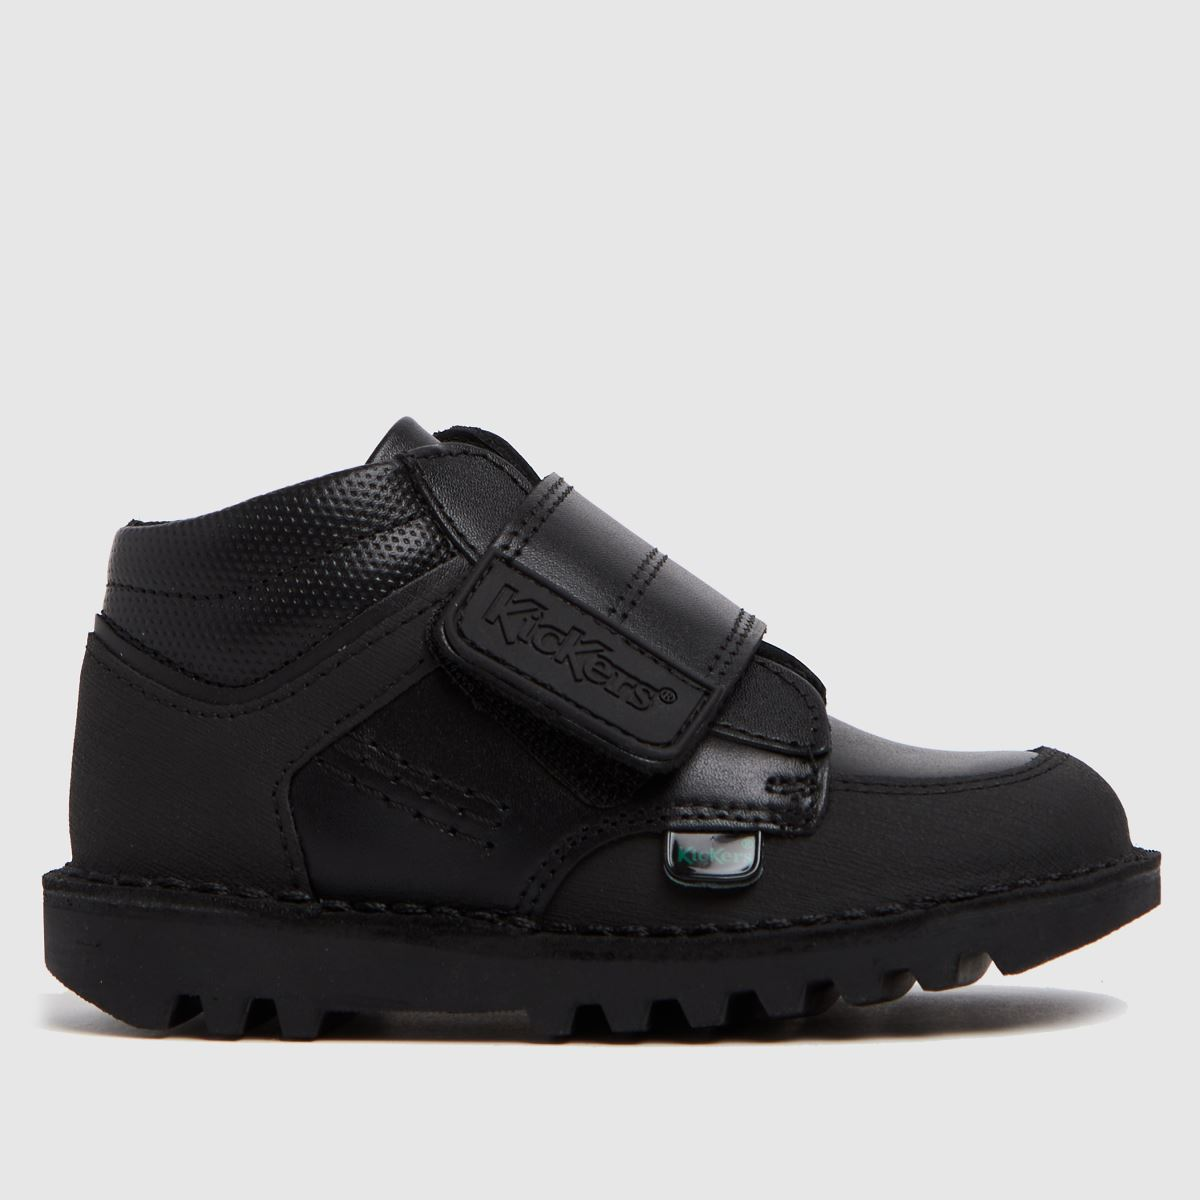 Kickers Black Mid Scuff Boots Toddler